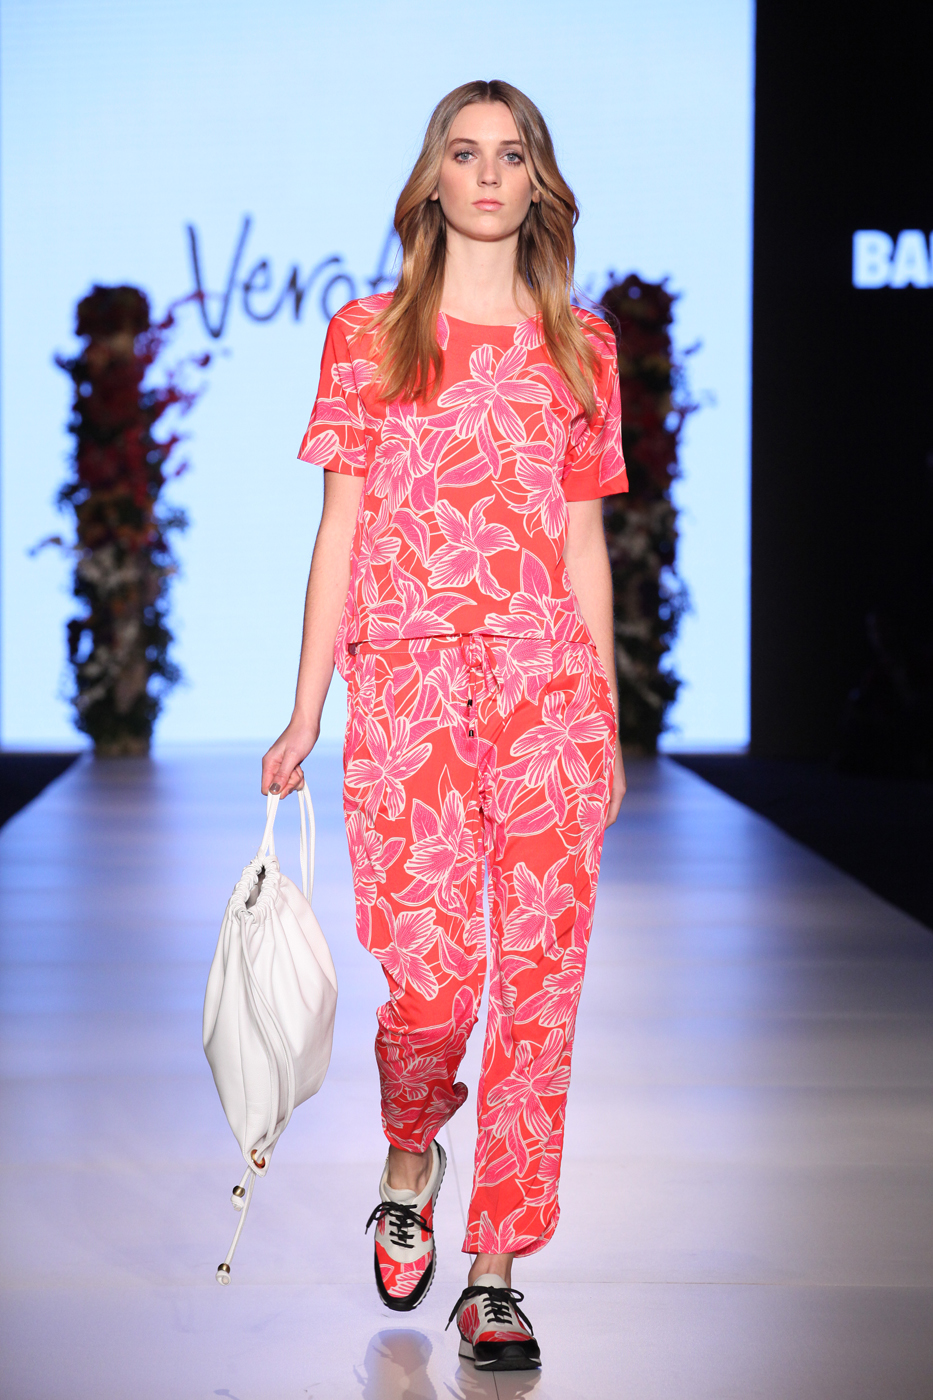 vero-alfie-bafweek-fashion-diaries-3